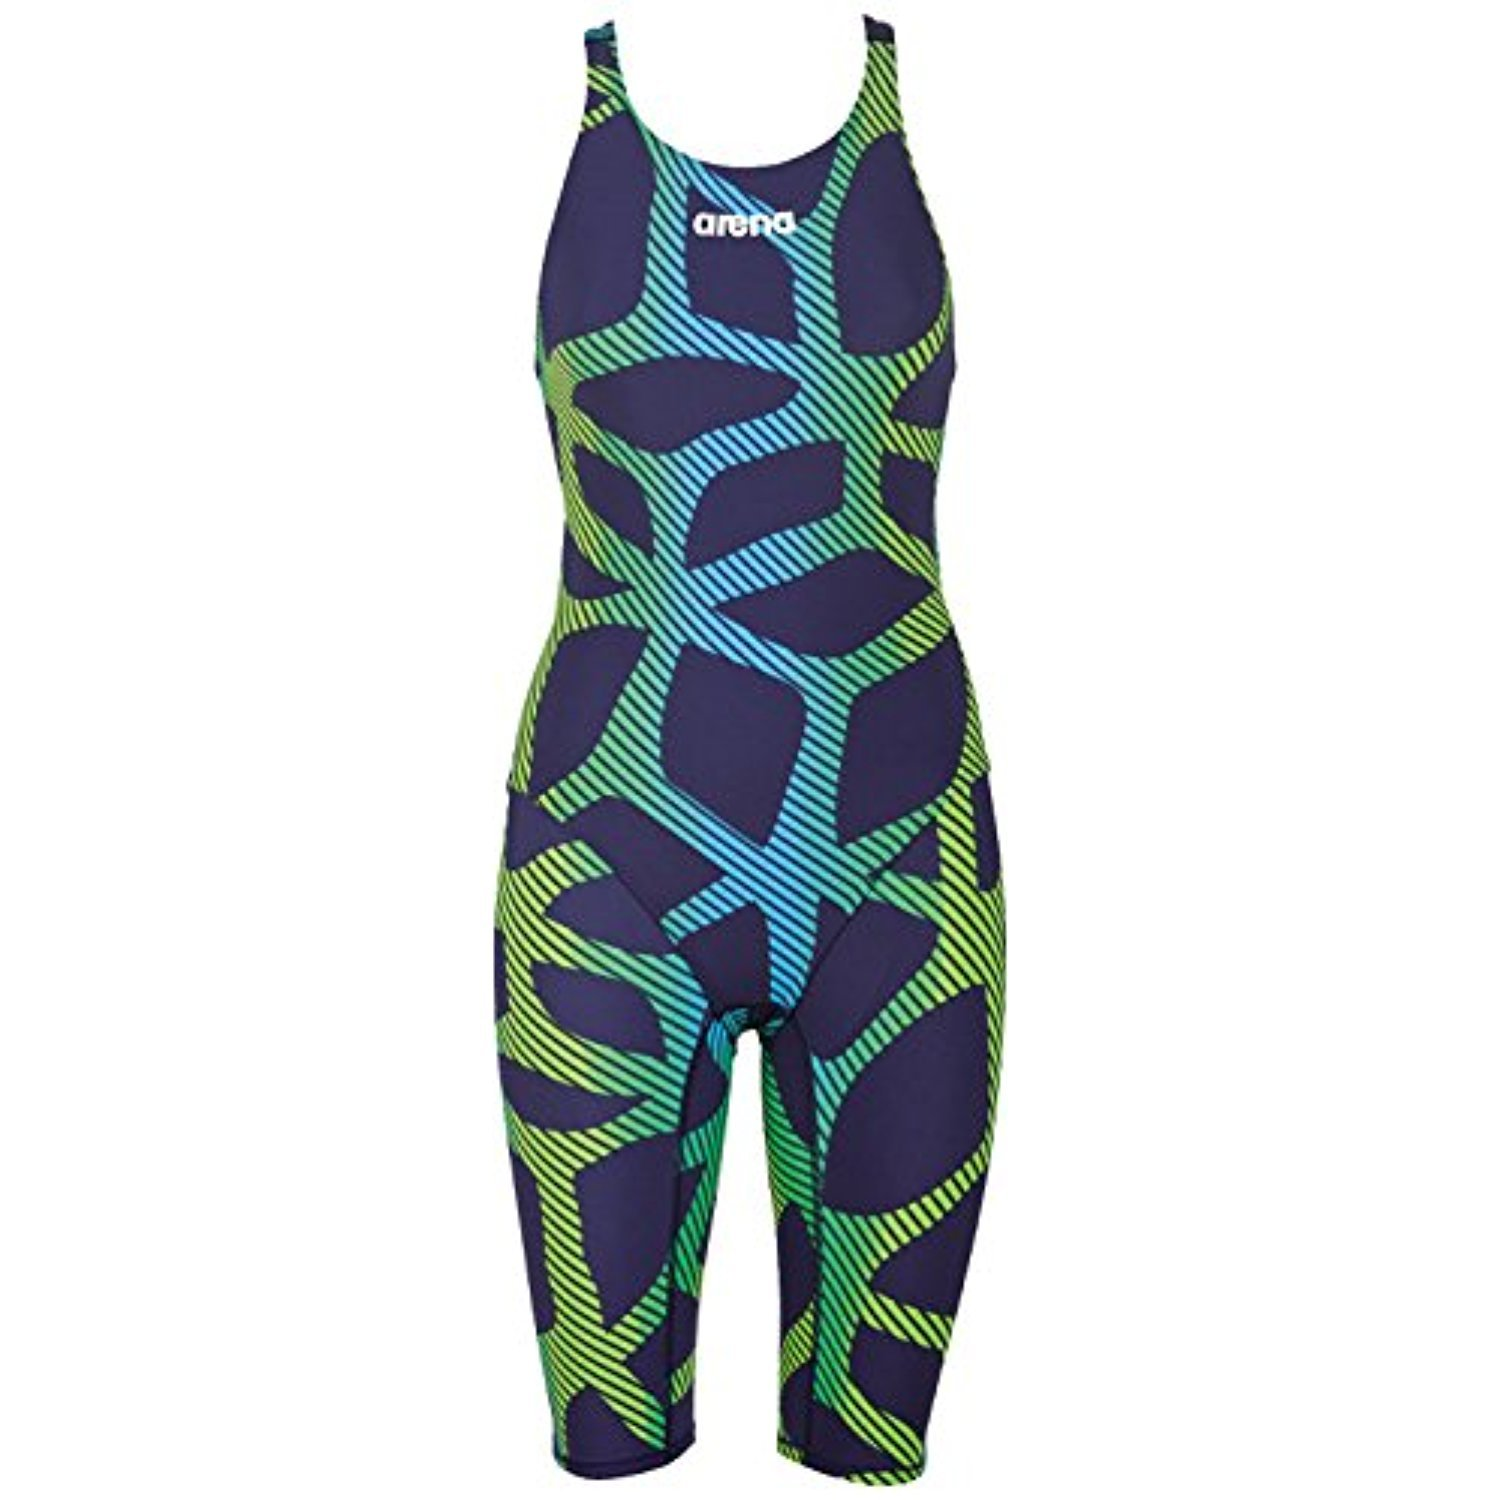 arena Powerskin ST Kneeskin Limited Edition Navy Flo Green 32